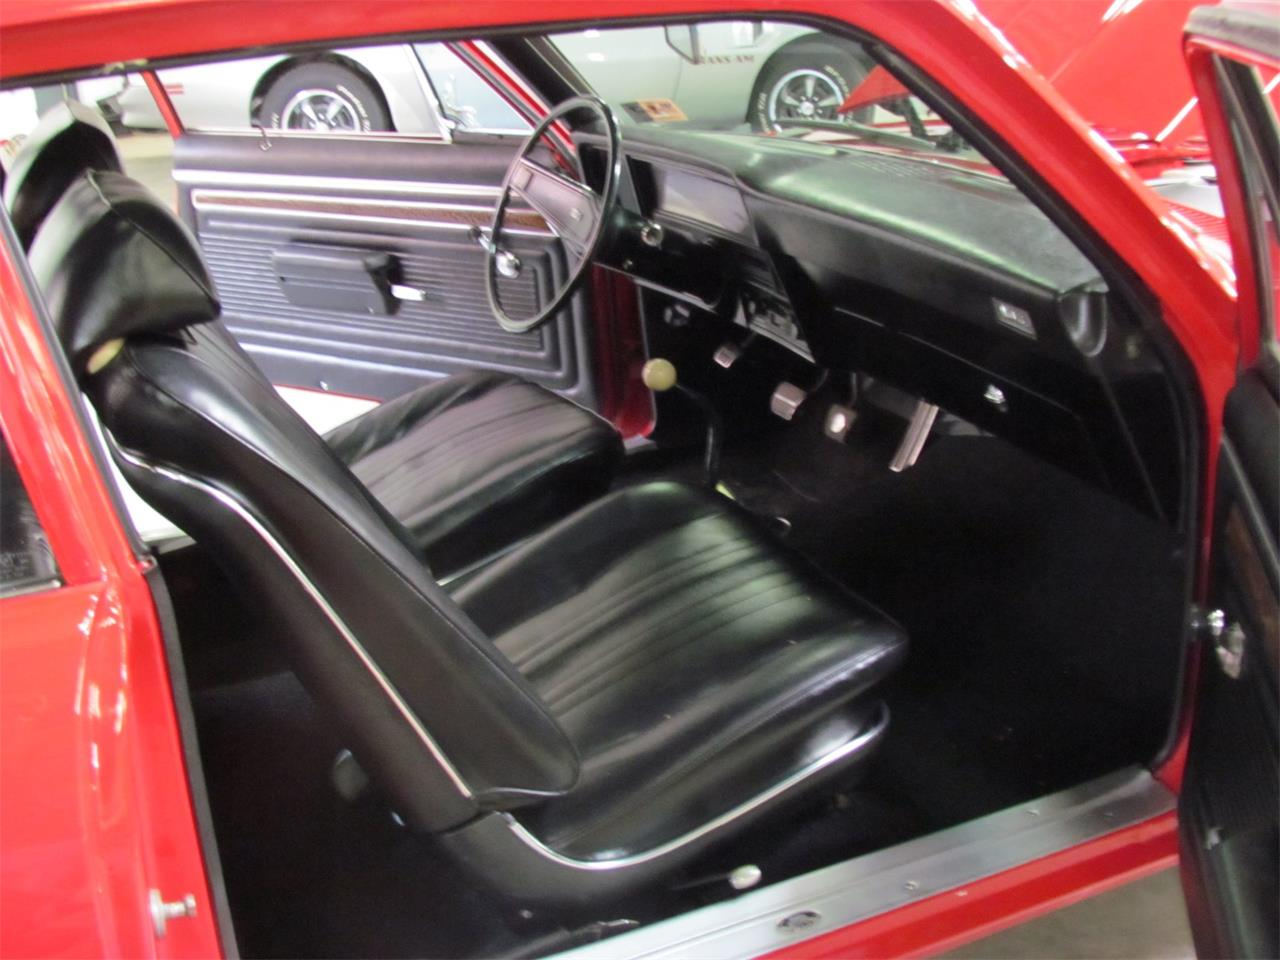 Large Picture of '70 Chevrolet Nova located in Illinois - $29,995.00 - Q1DC